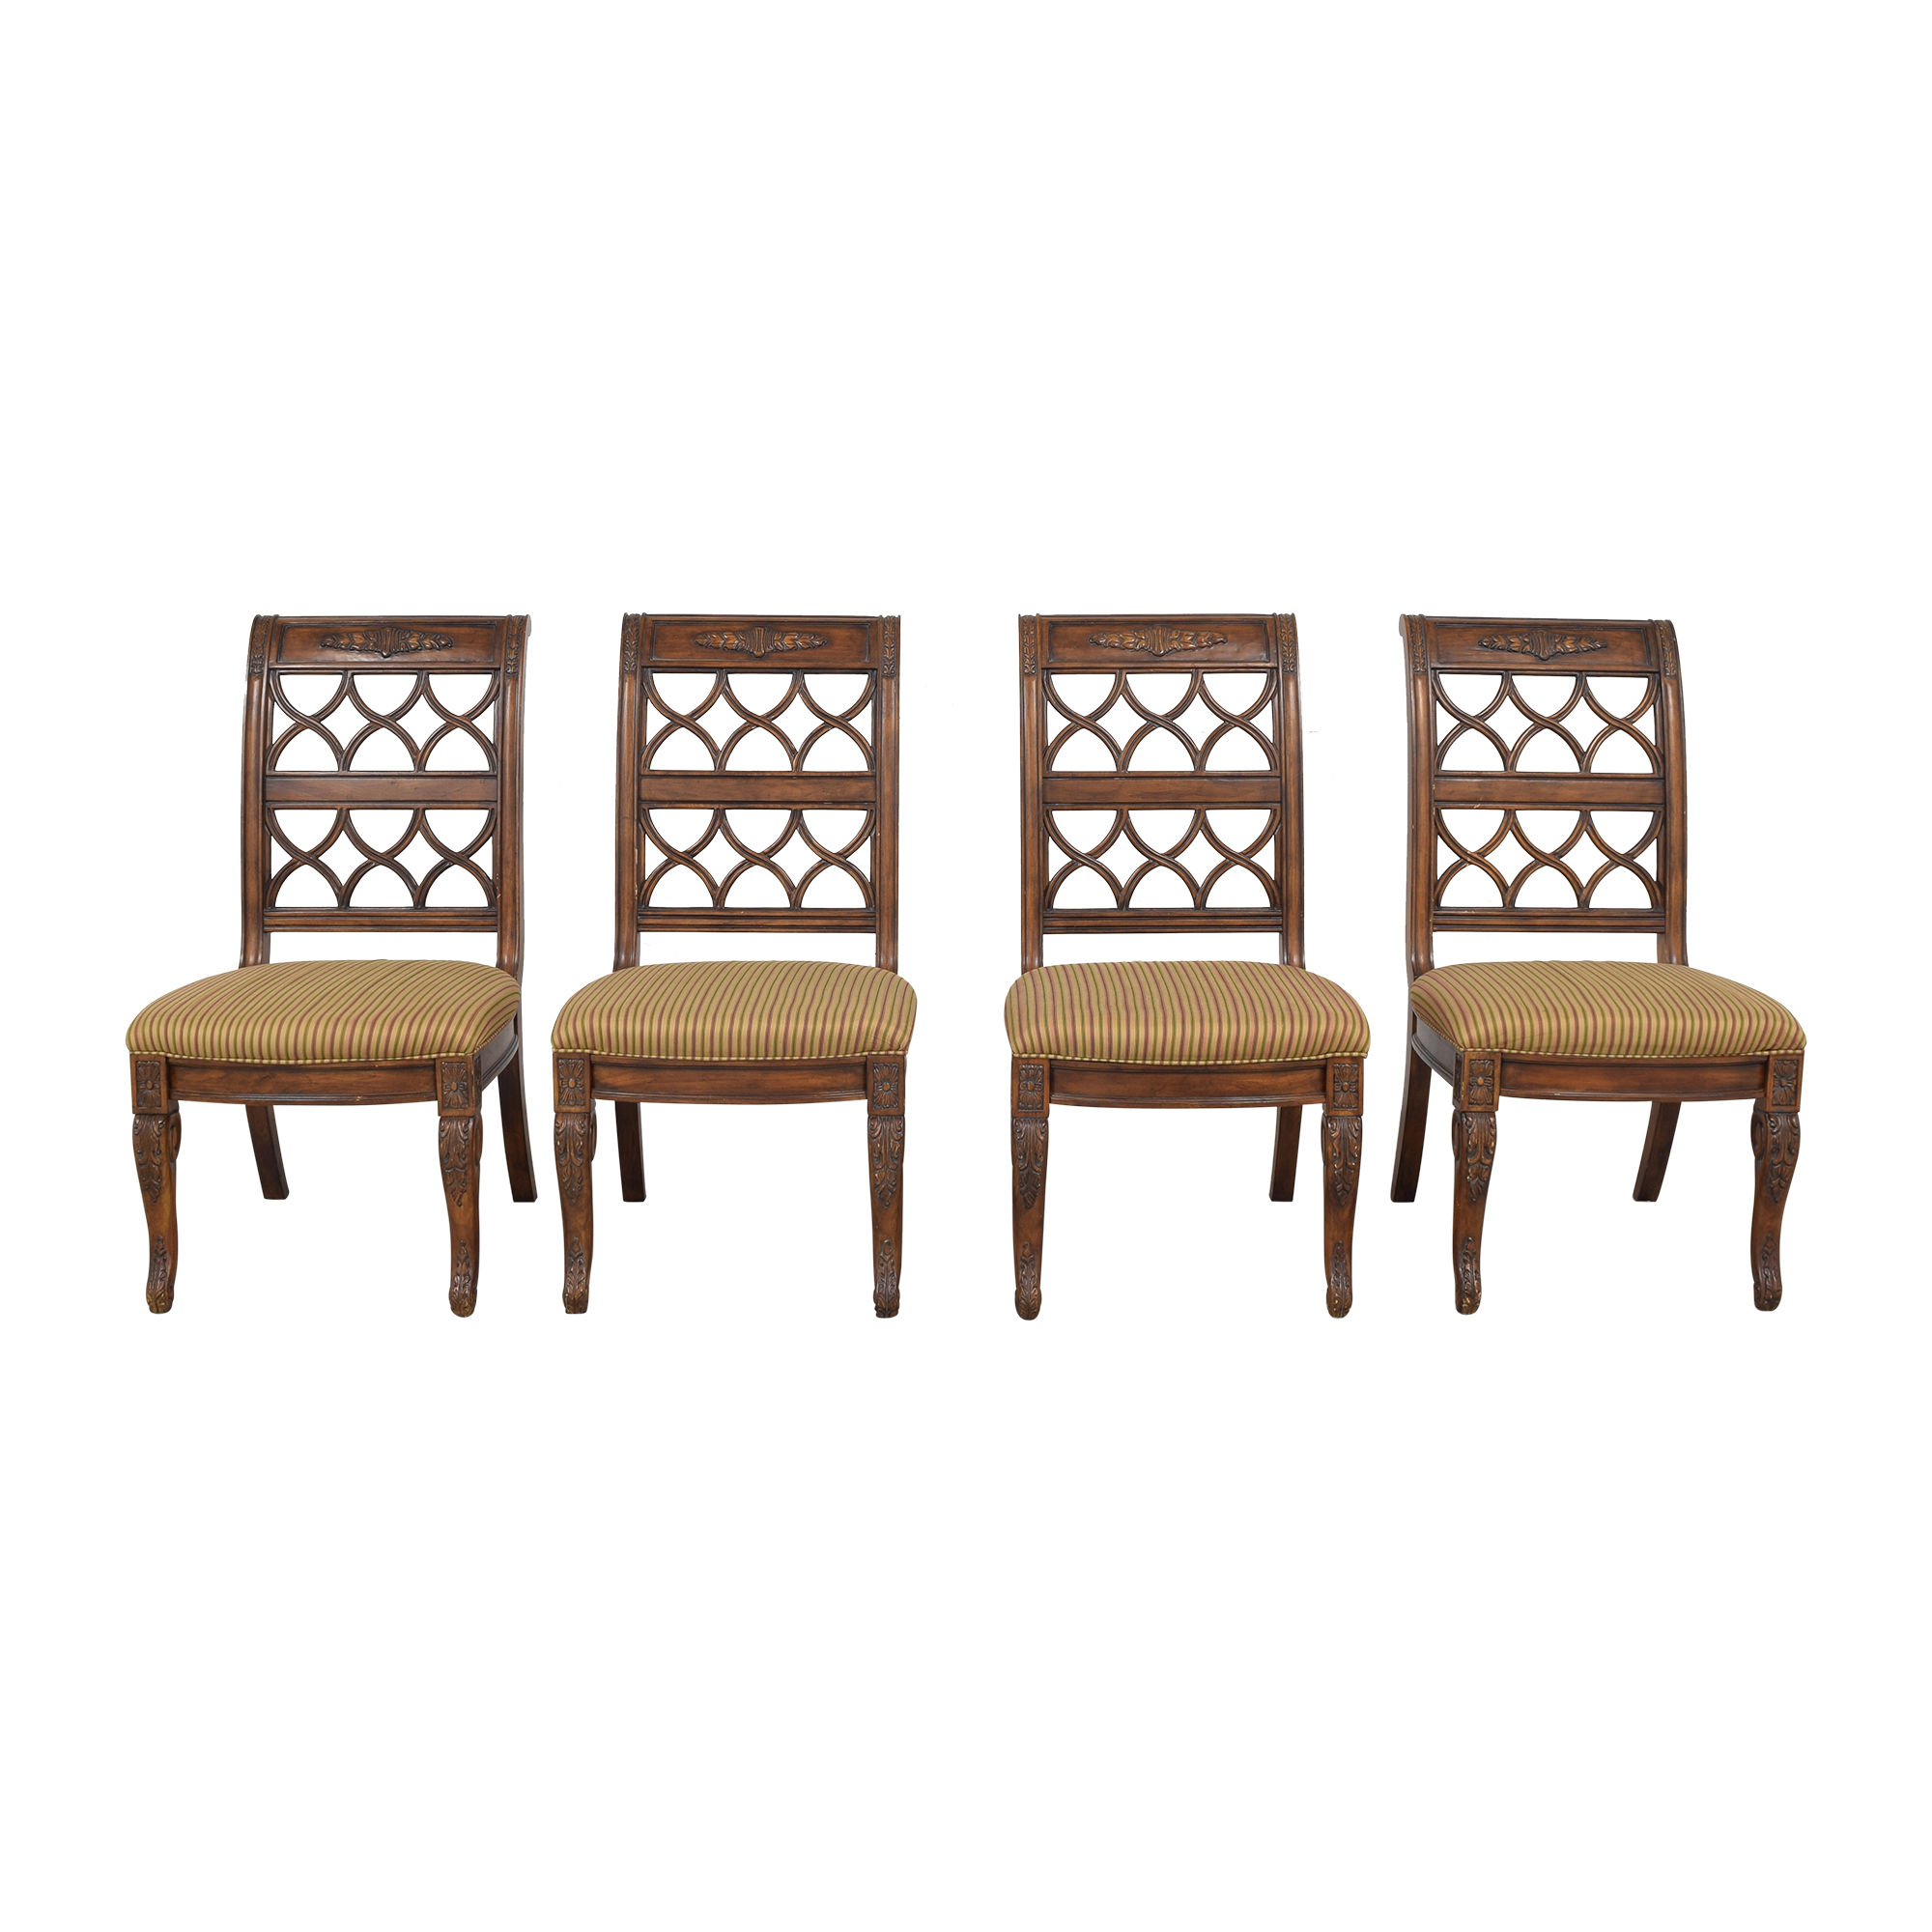 Drexel Heritage Drexel Heritage Dining Side Chairs Dining Chairs